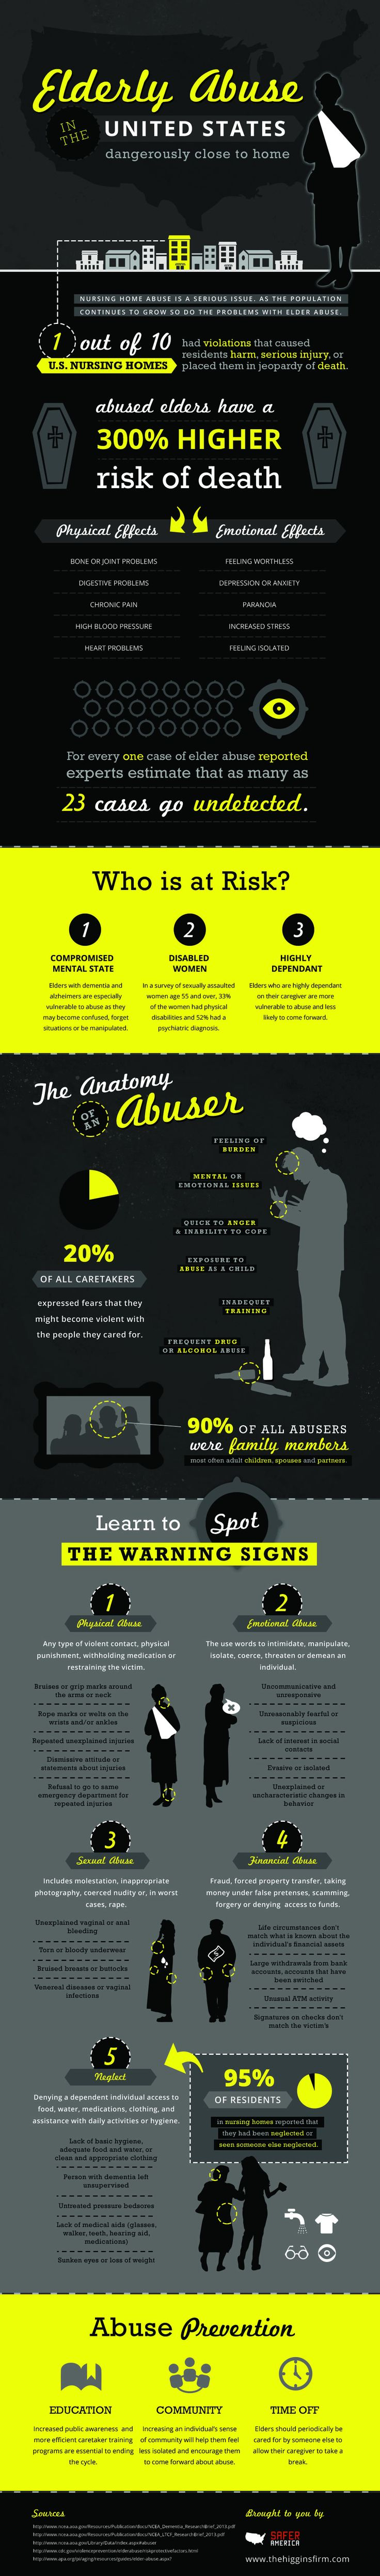 Elderly Abuse In The United States: Dangerously Close To Home   #Infographic #UnitedStates #ElderlyAbuse | let's stay vigilant